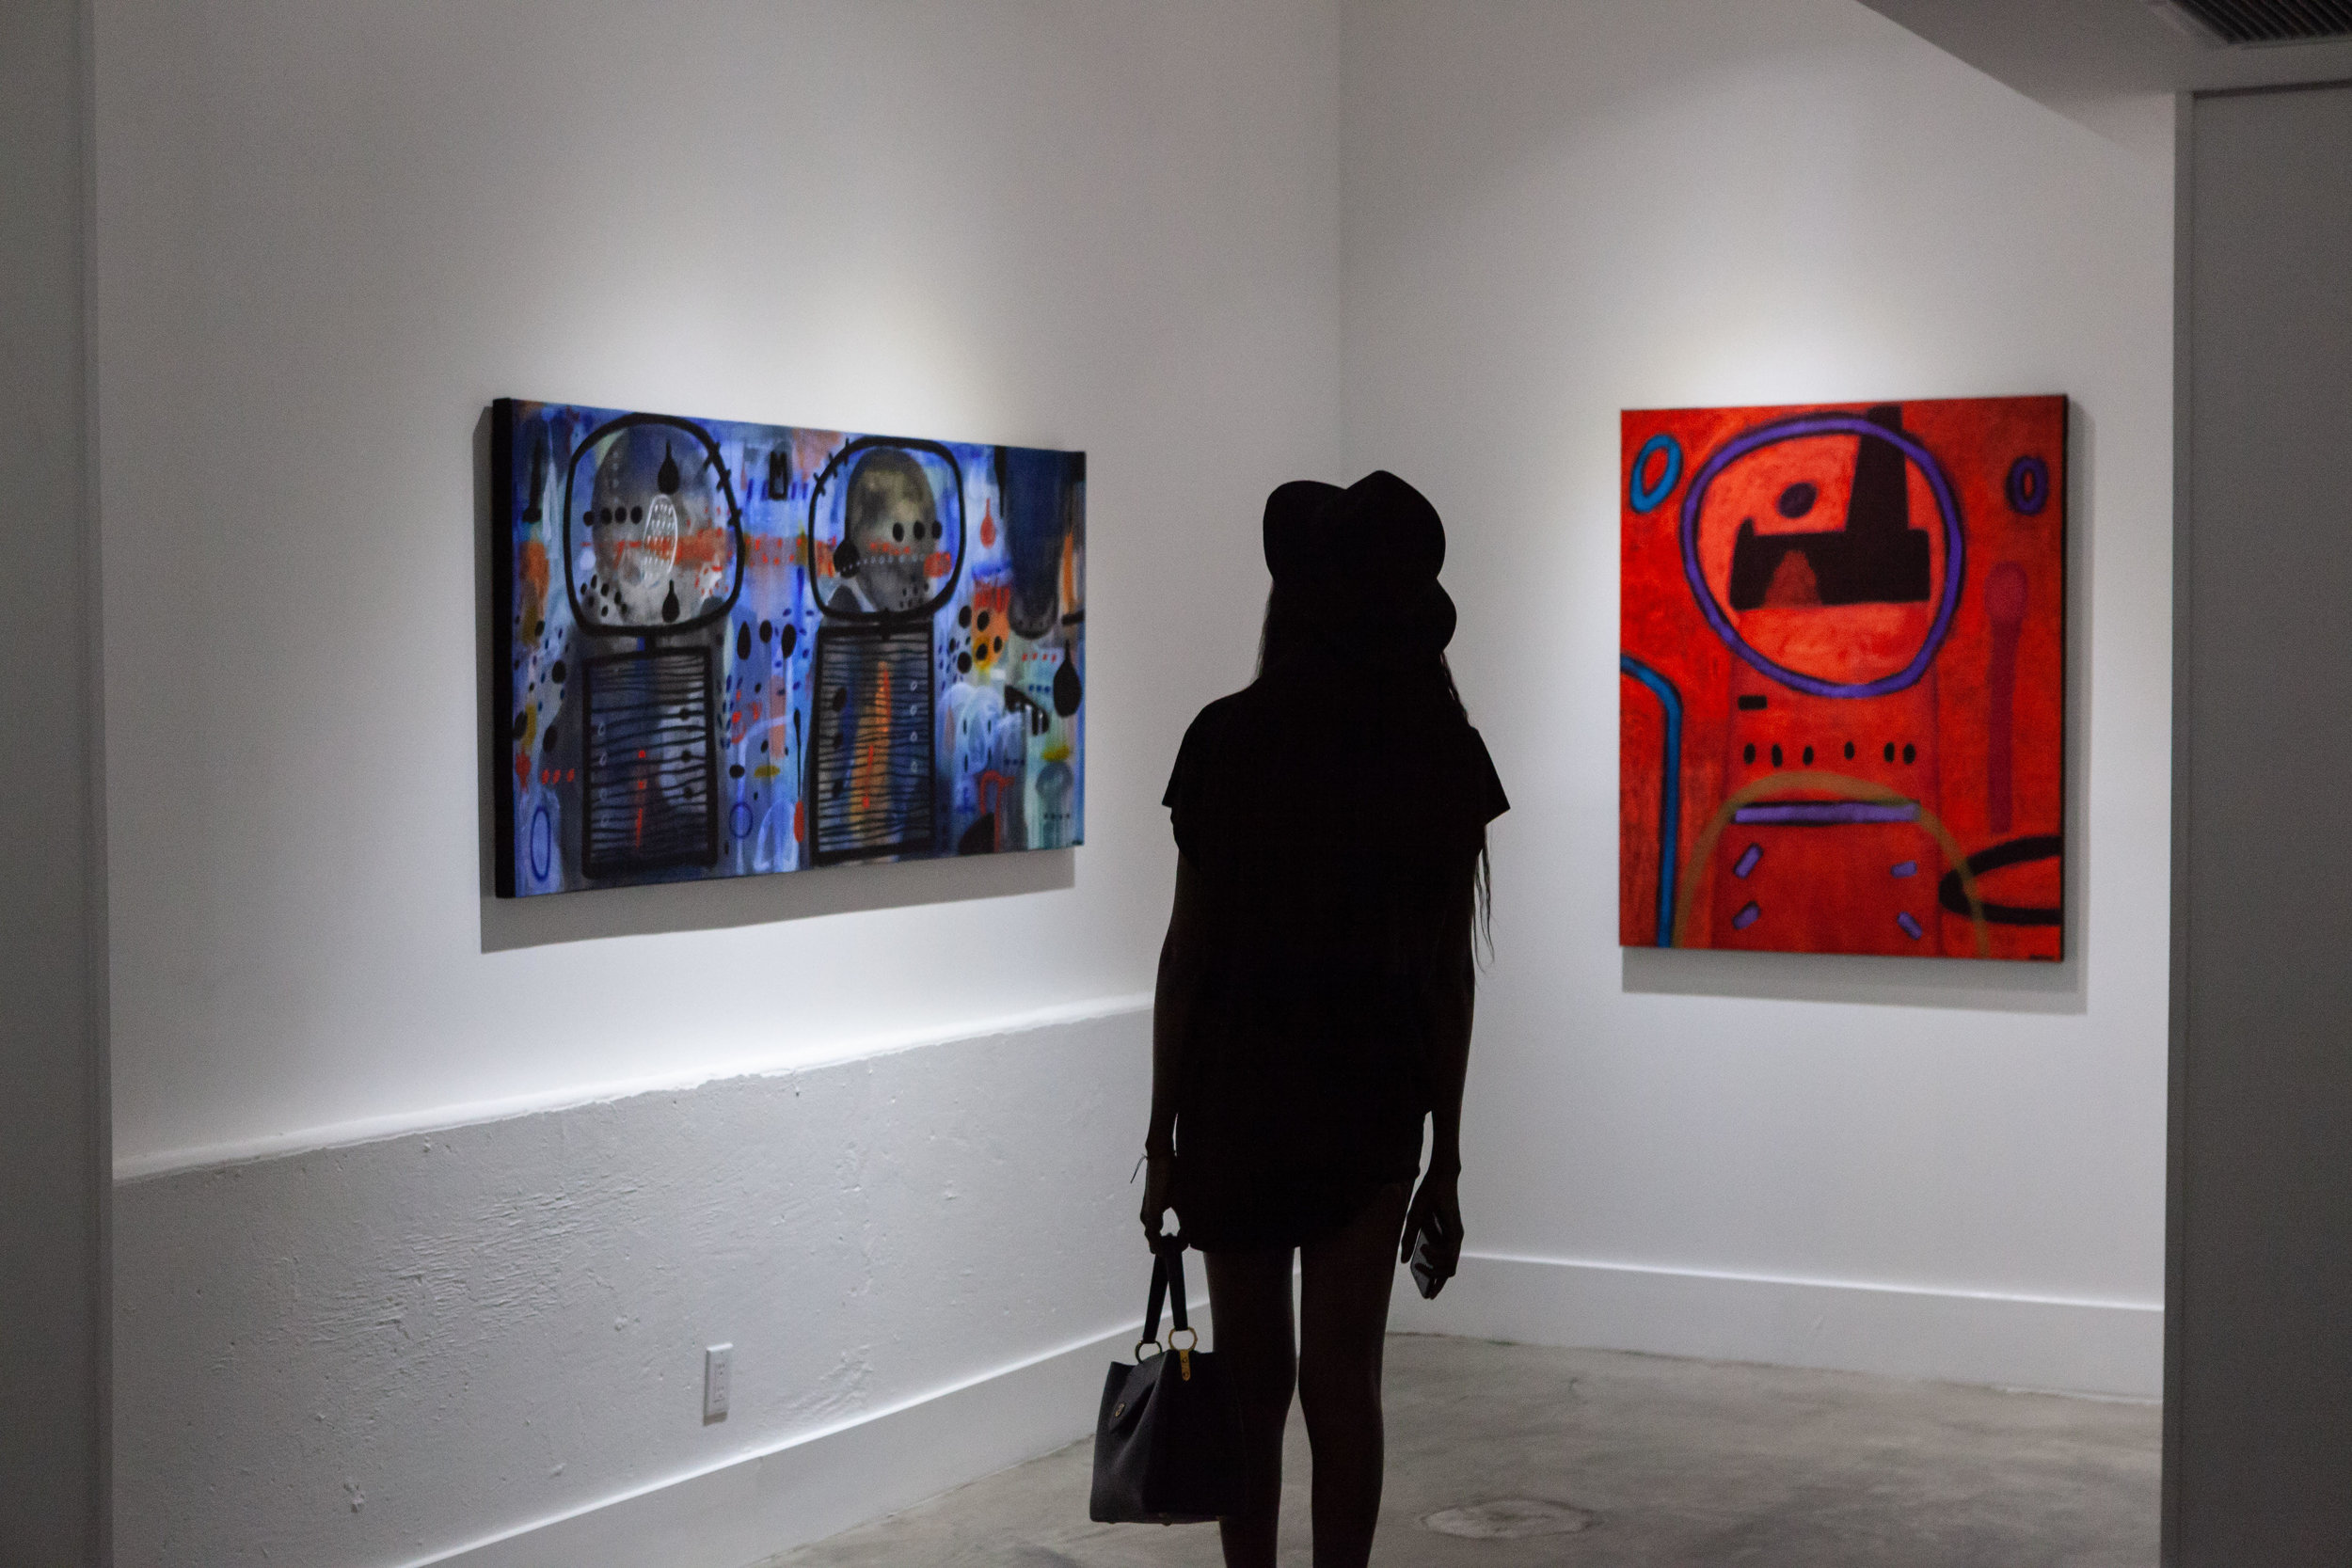 LIBERTAD  GROUP SHOW  September 13 - October 4, 2018 Opening Thursday, September 13, 7-10PM   View Exhibition